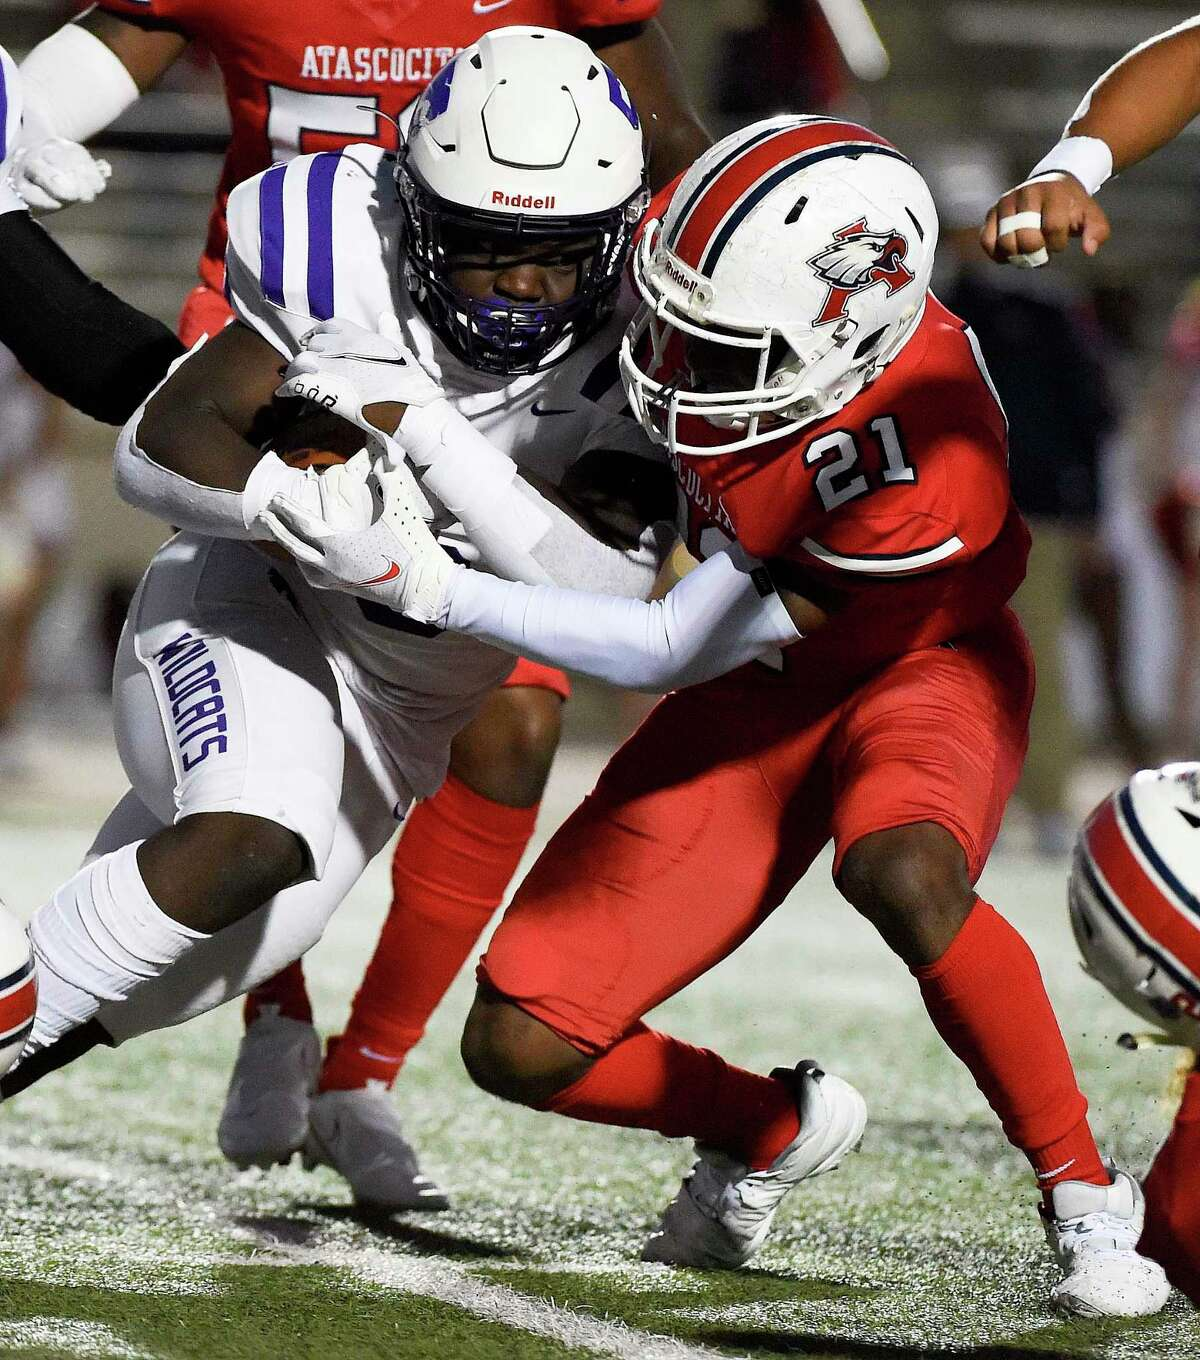 Humble running back X'Zavier Sidney, left, is tackled by Atascocita linebacker Jameer Martin (21) during the first half of a high school football game, Friday, Oct. 23, 2020, in Humble.